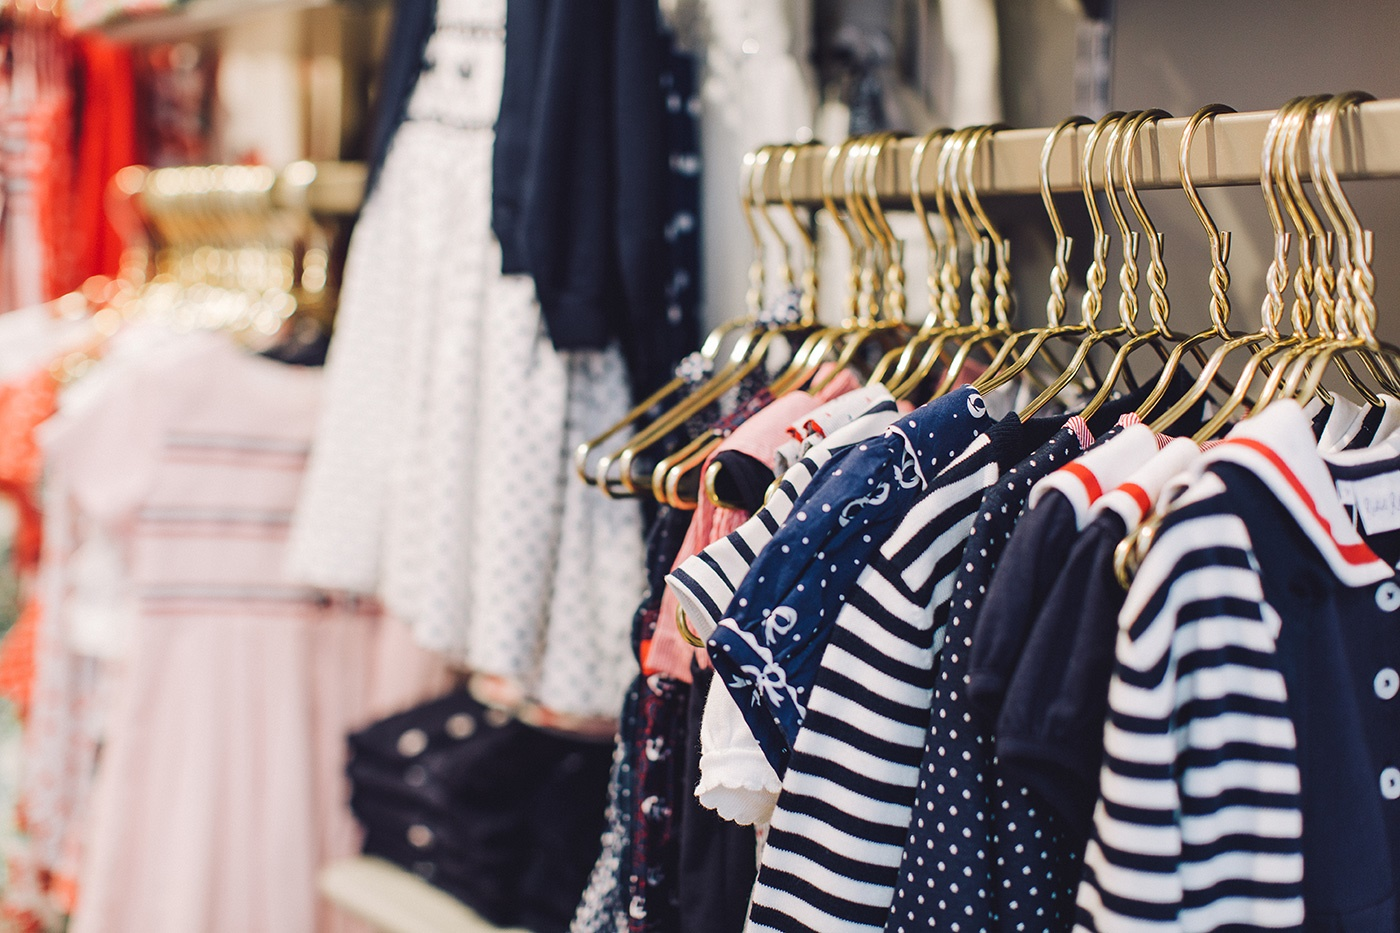 Fashion and Accessories Retail Sector Support